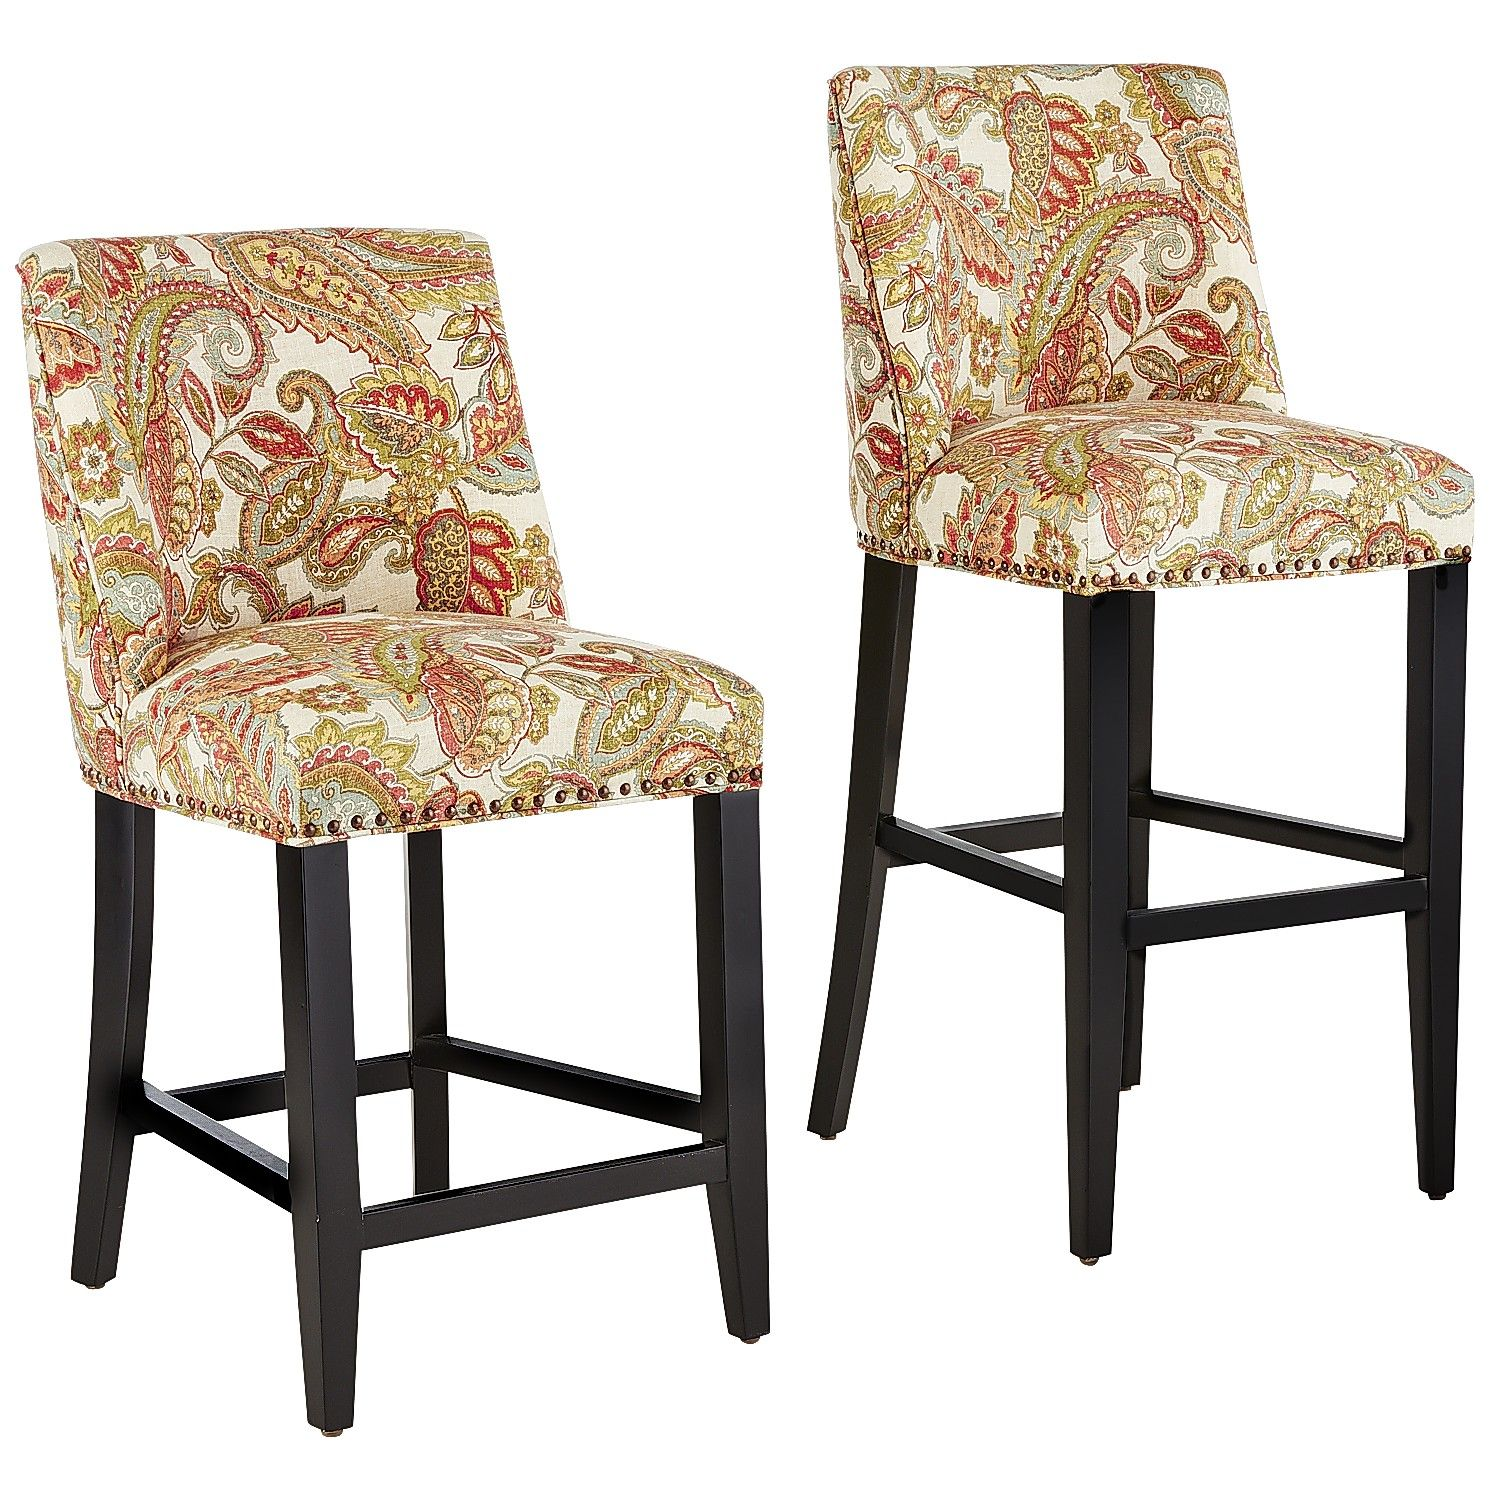 Payless Furniture Store Dining Room Tables: Multi-colored Corinne Bar & Counter Stools